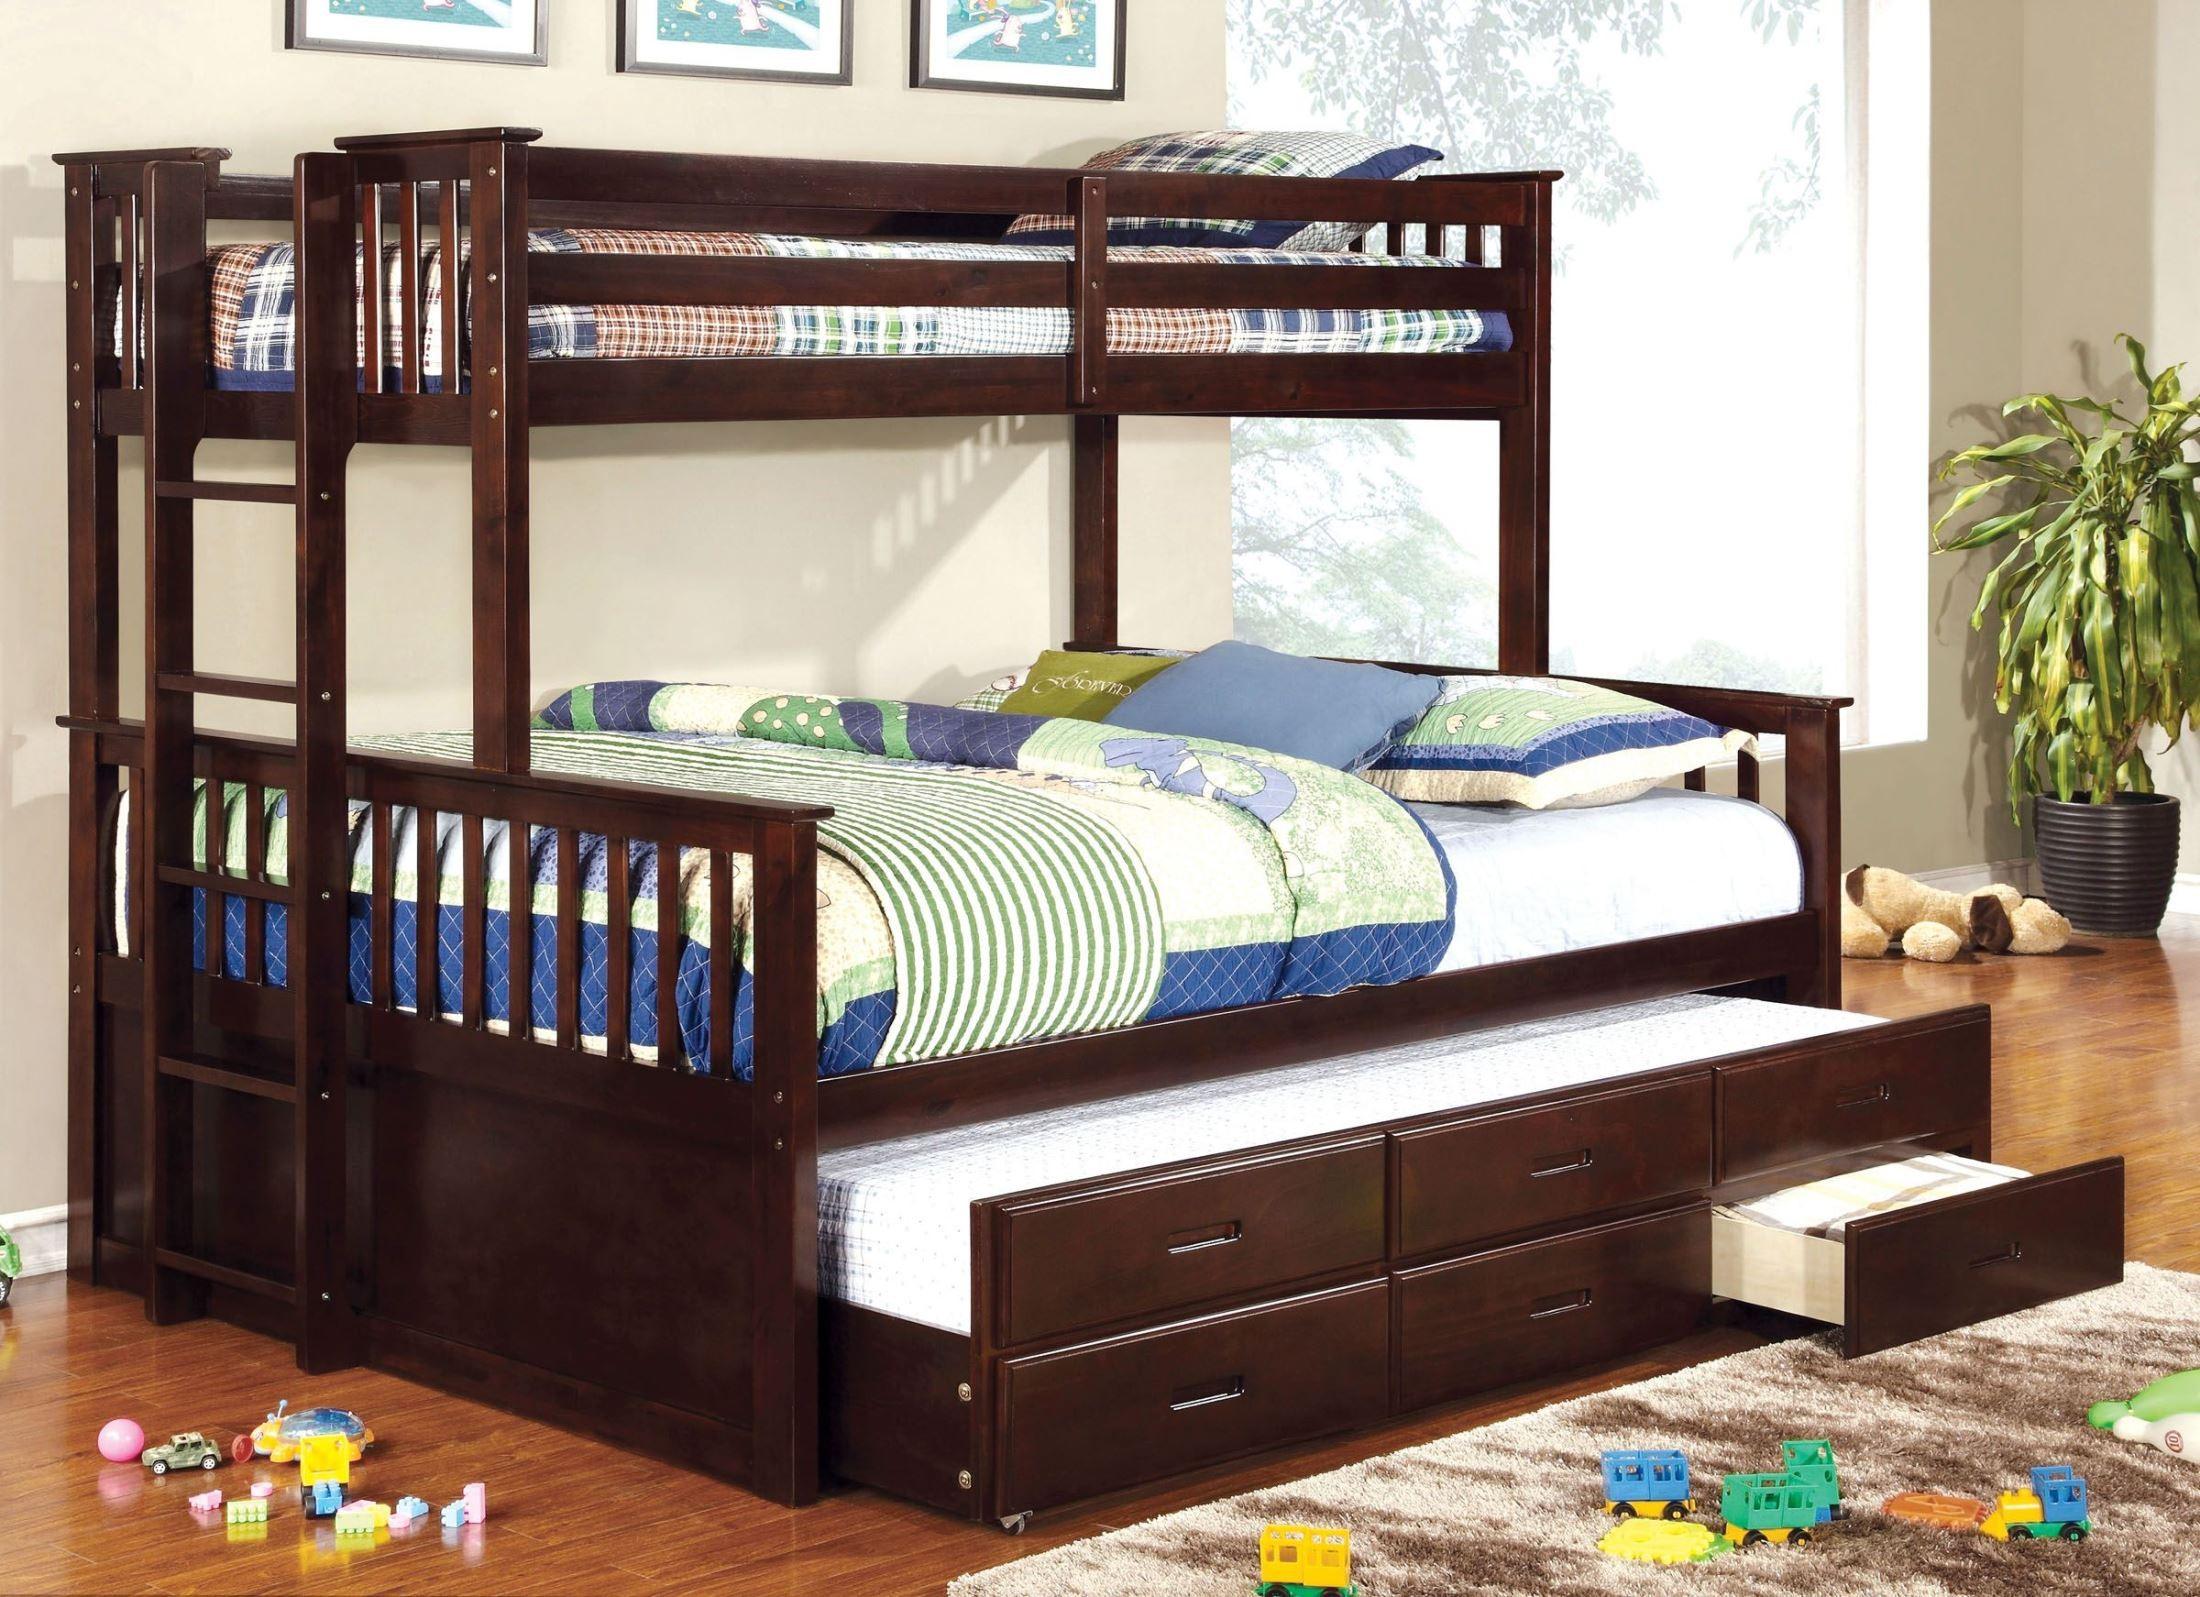 University Espresso Extra Long Twin Over Queen Bunk Bed From Furniture Of America Cm Bk458q Exp